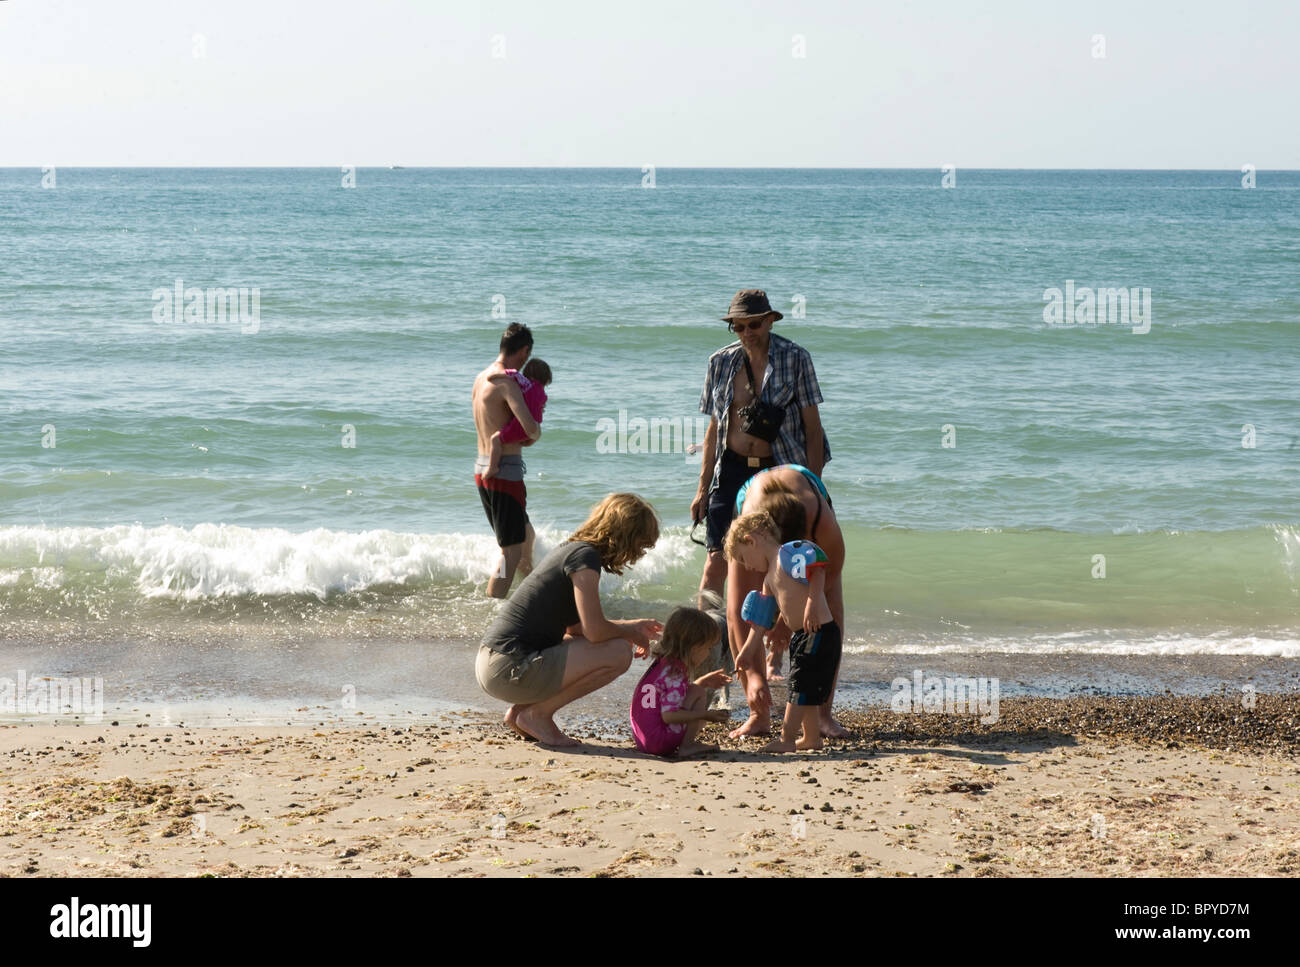 Family (3 generations) on holiday at the beach - Stock Image